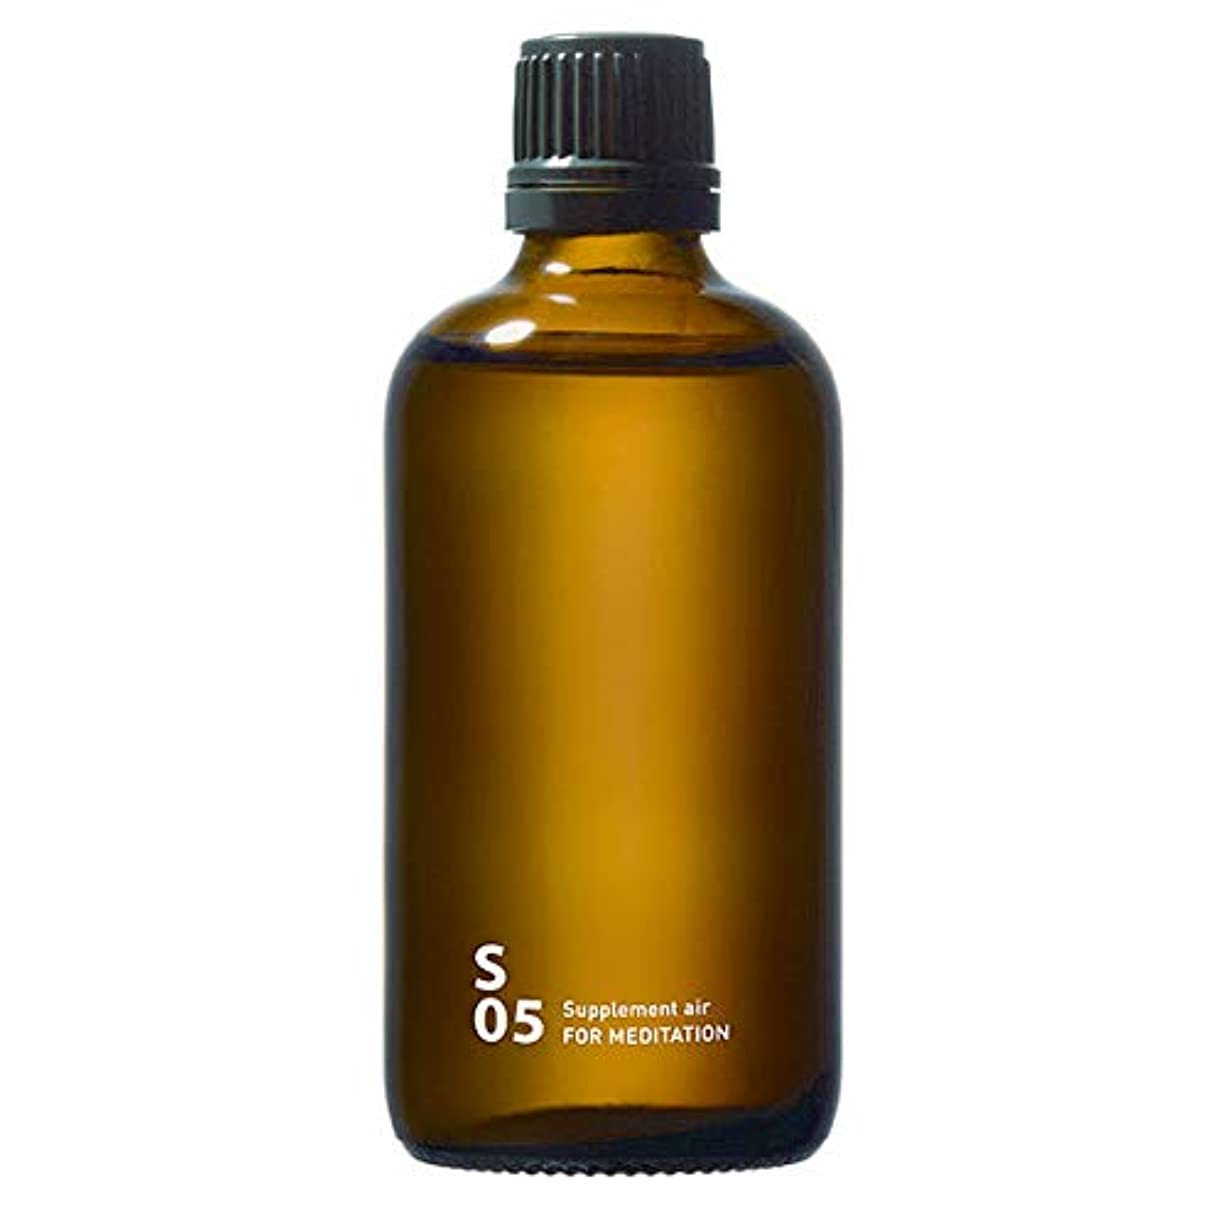 S05 FOR MEDITATION piezo aroma oil 100ml